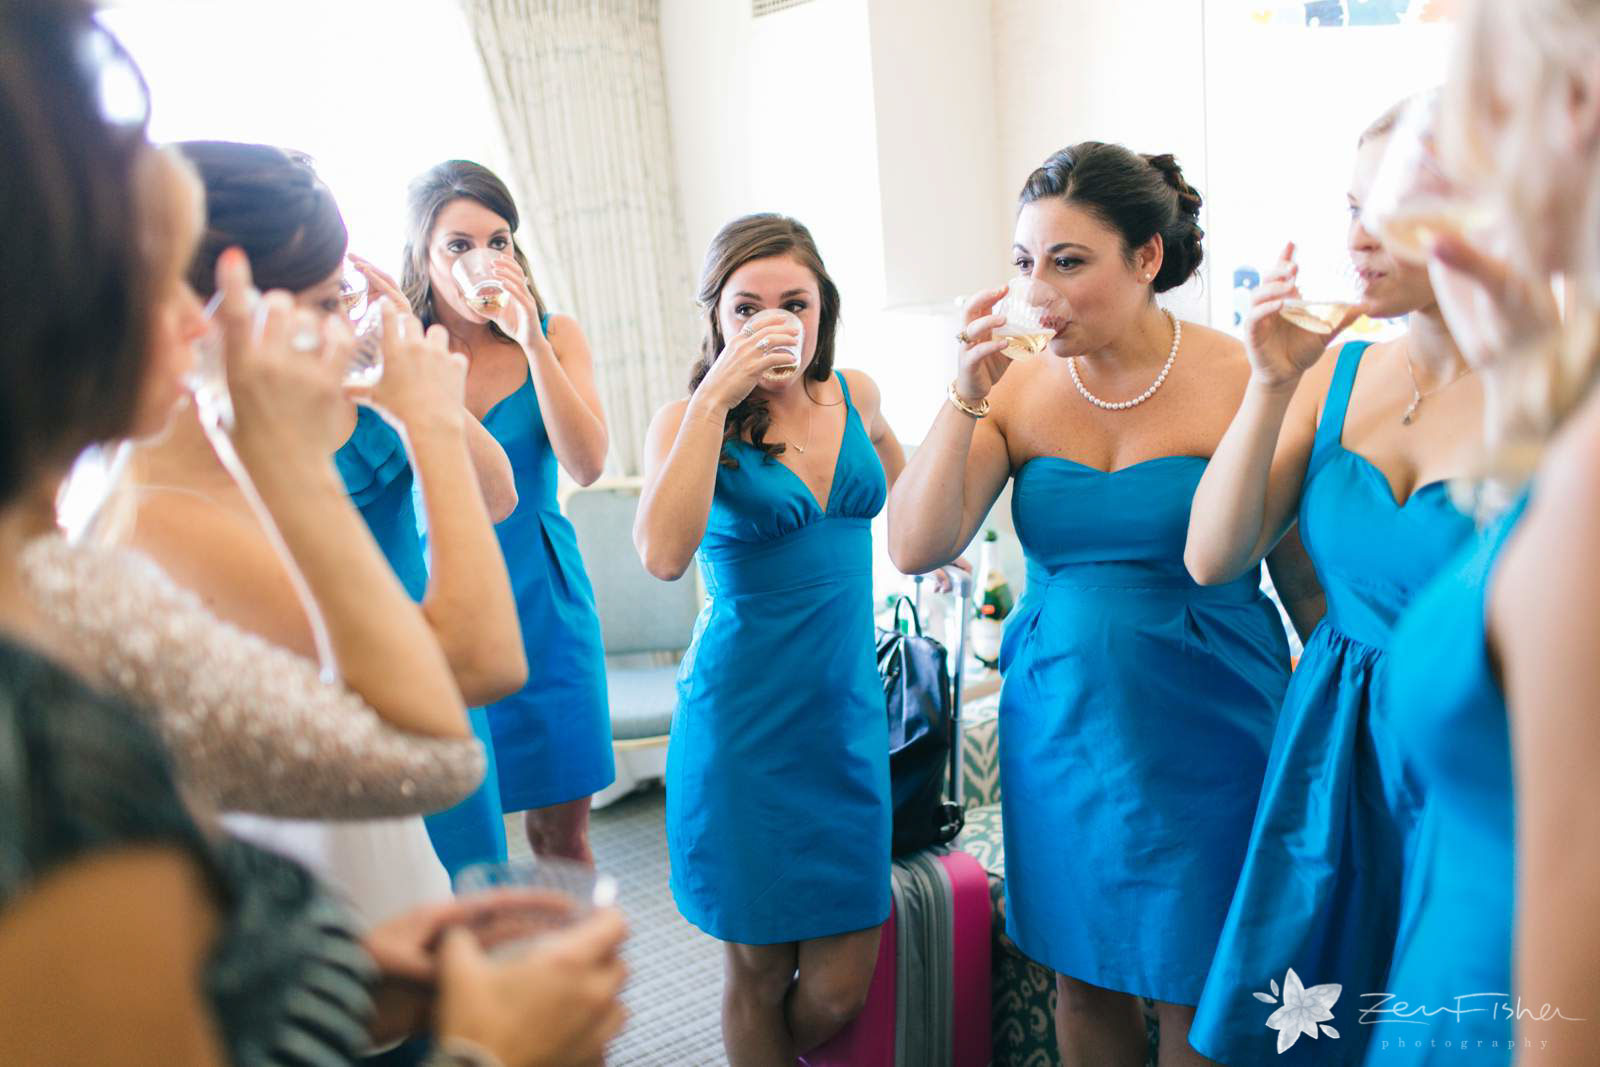 Bridesmaids sipping champagne in the hotel room while getting ready, blue bridesmaids dresses.